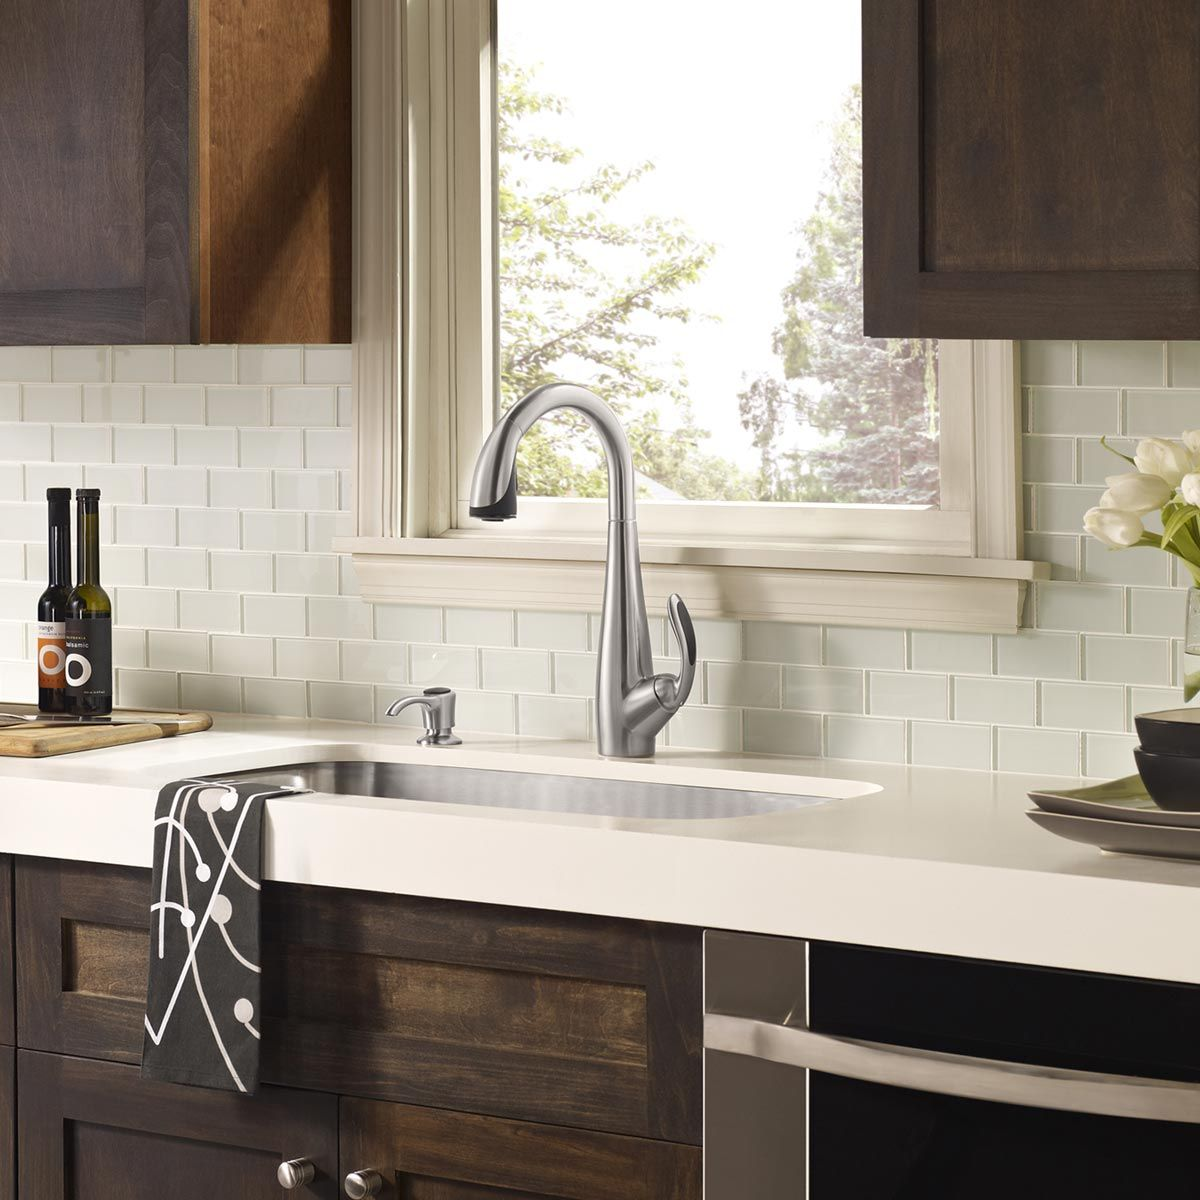 White Glass Tile Backsplash White Countertop With Dark Wood Cabinets Perfect Kitchens